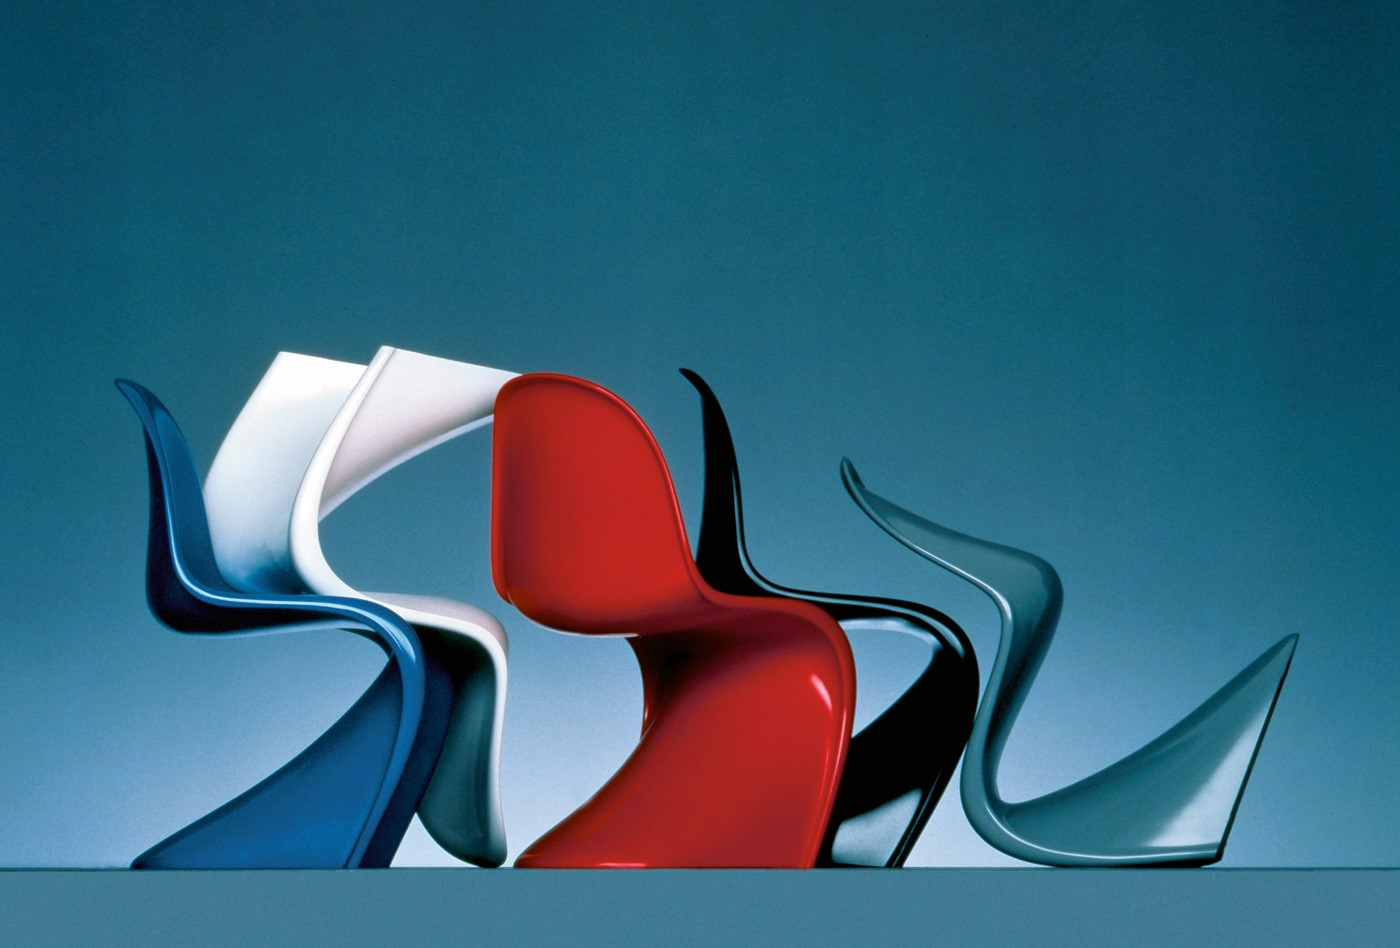 https://www.spaceplan.sk/sk/designnews/legenda-prichadza-verner-panton/10260